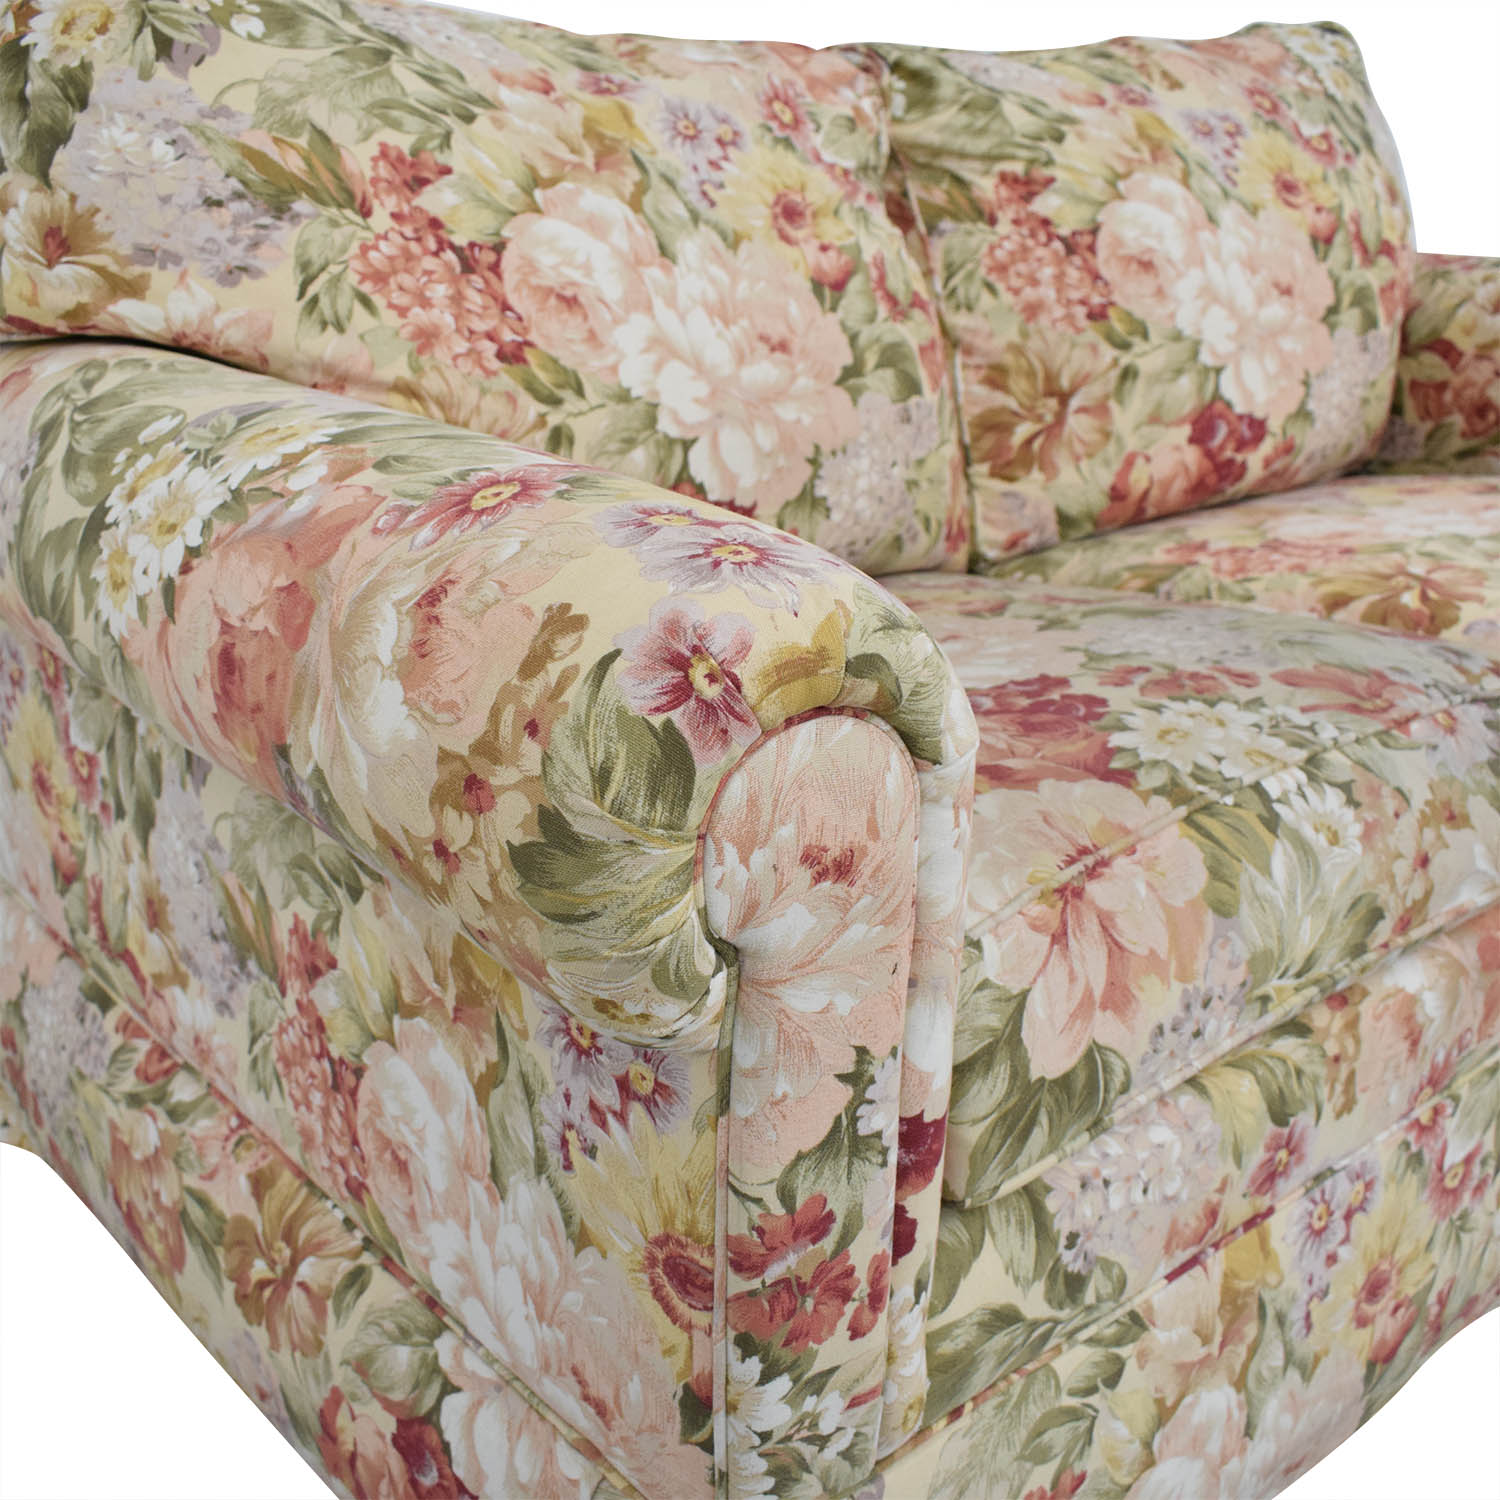 Ethan Allen Ethan Allen Floral Slipcovered Loveseat pa